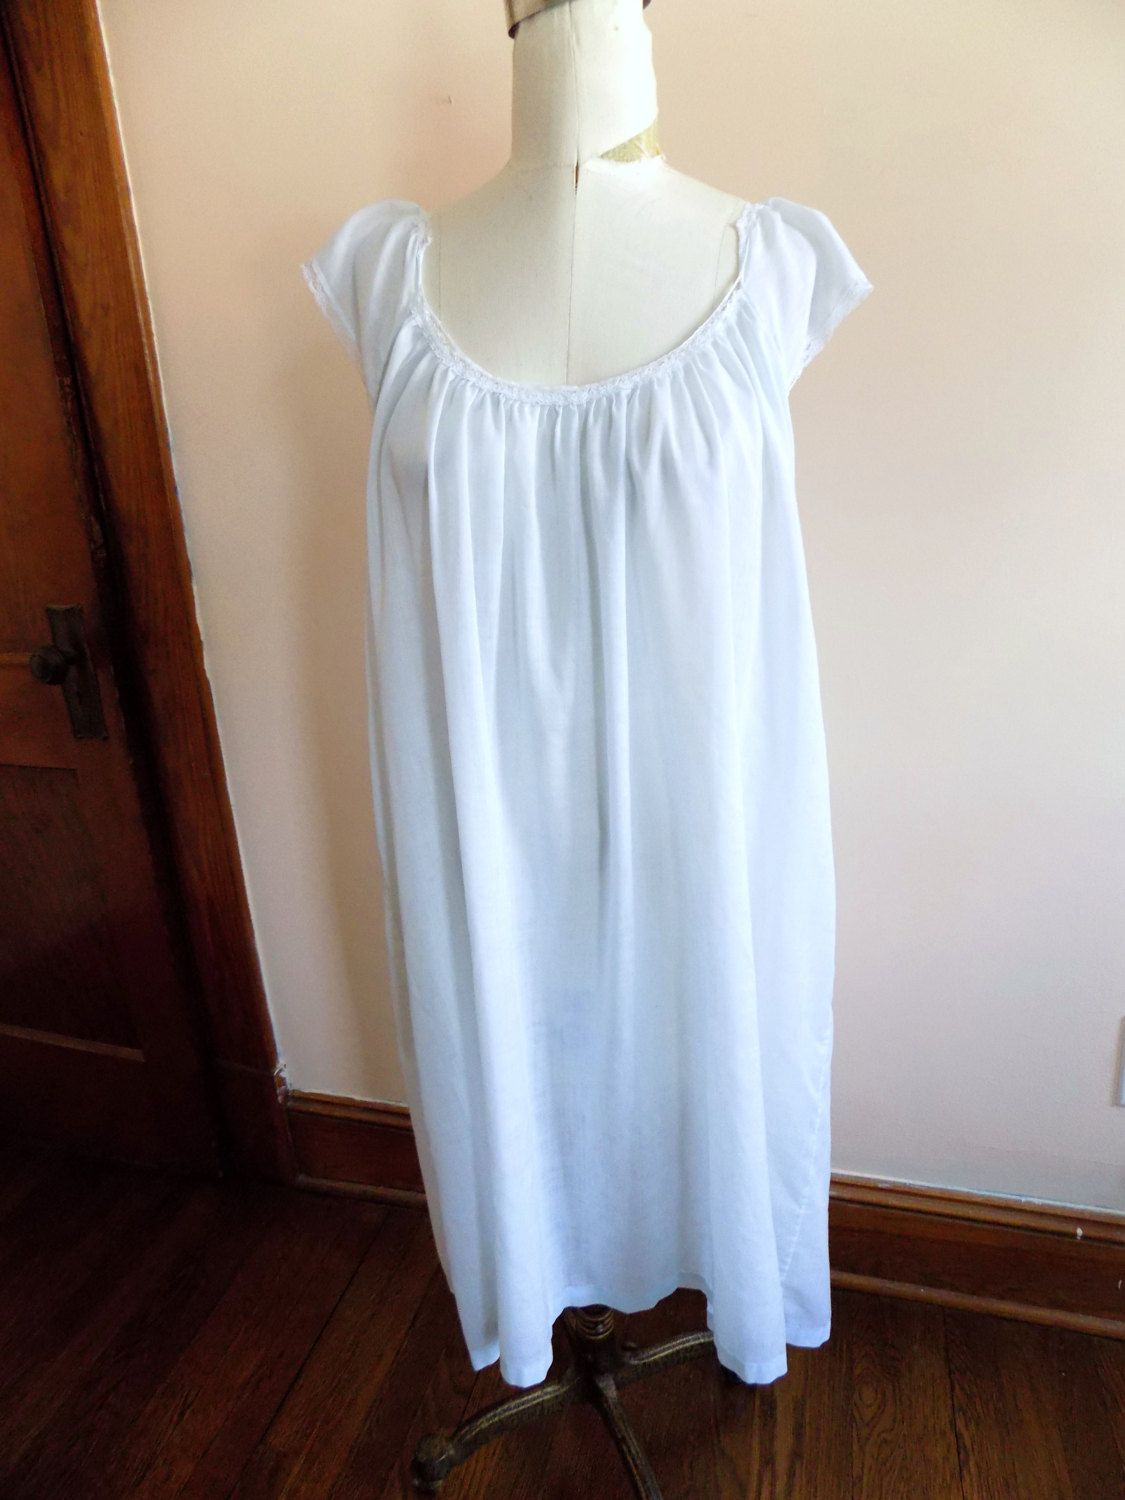 b0d8aecc5e5 80s White Nightgown